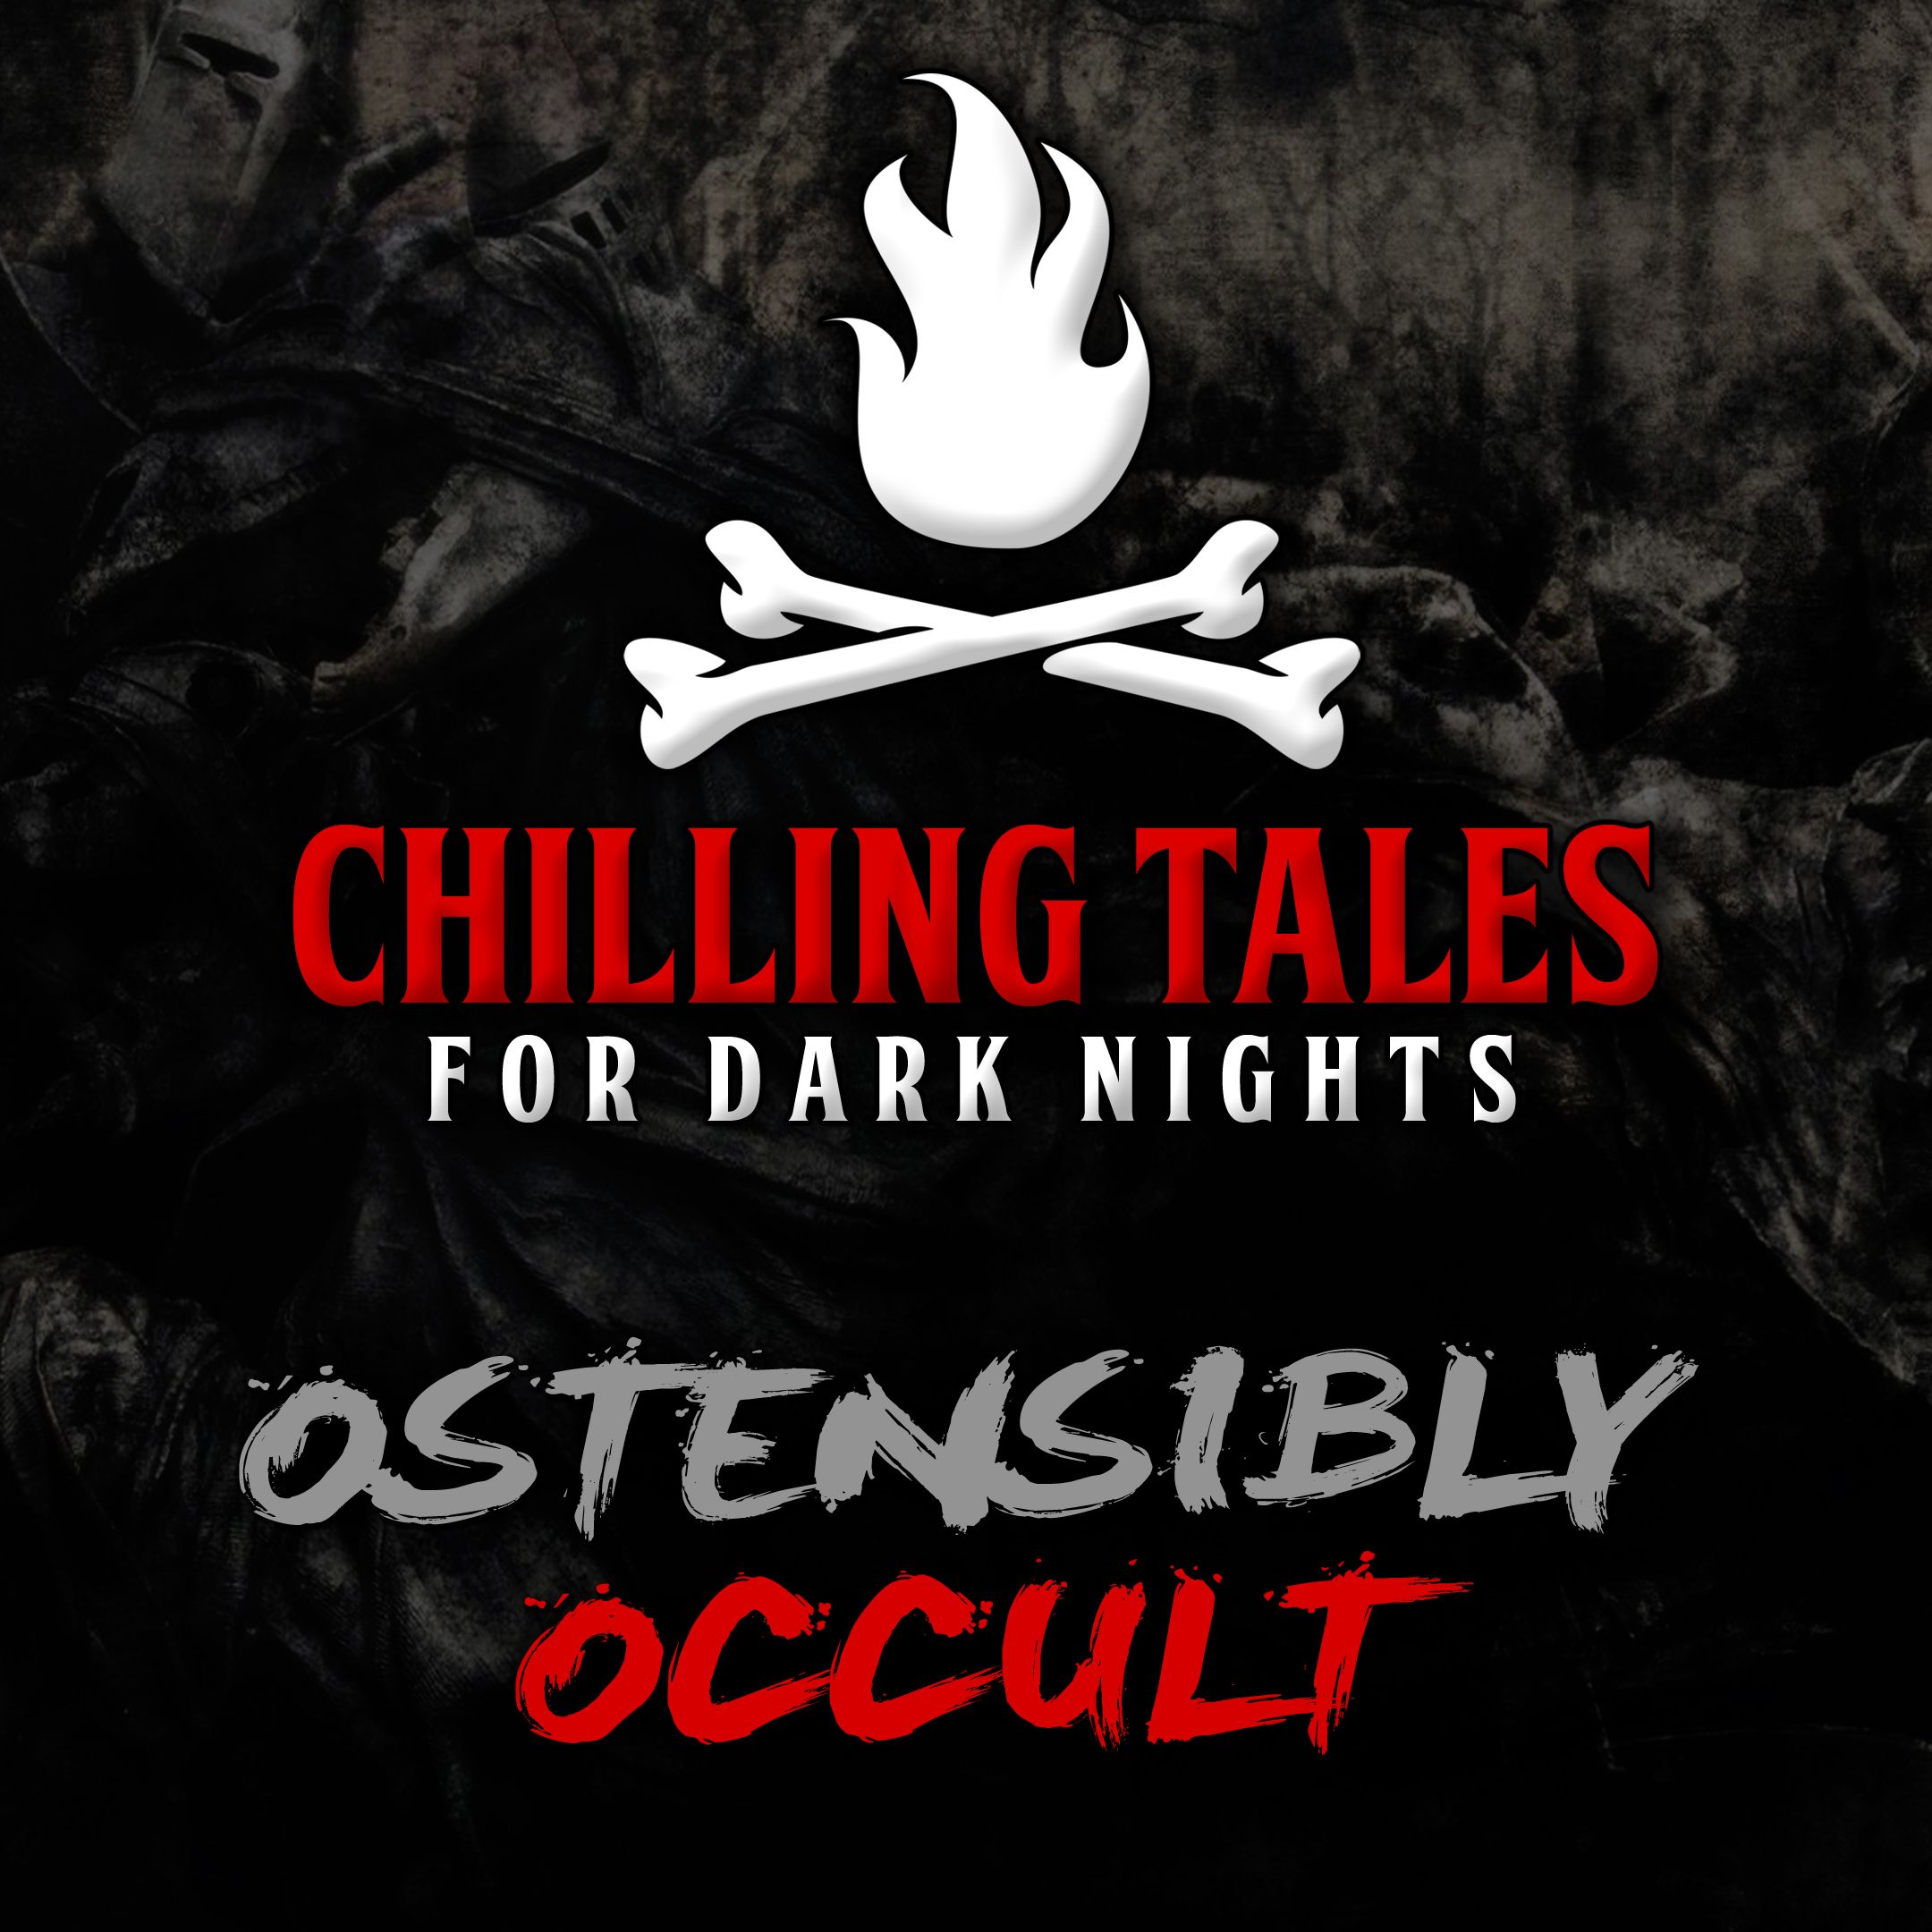 35: Ostenibly Occult – Chilling Tales for Dark Nights